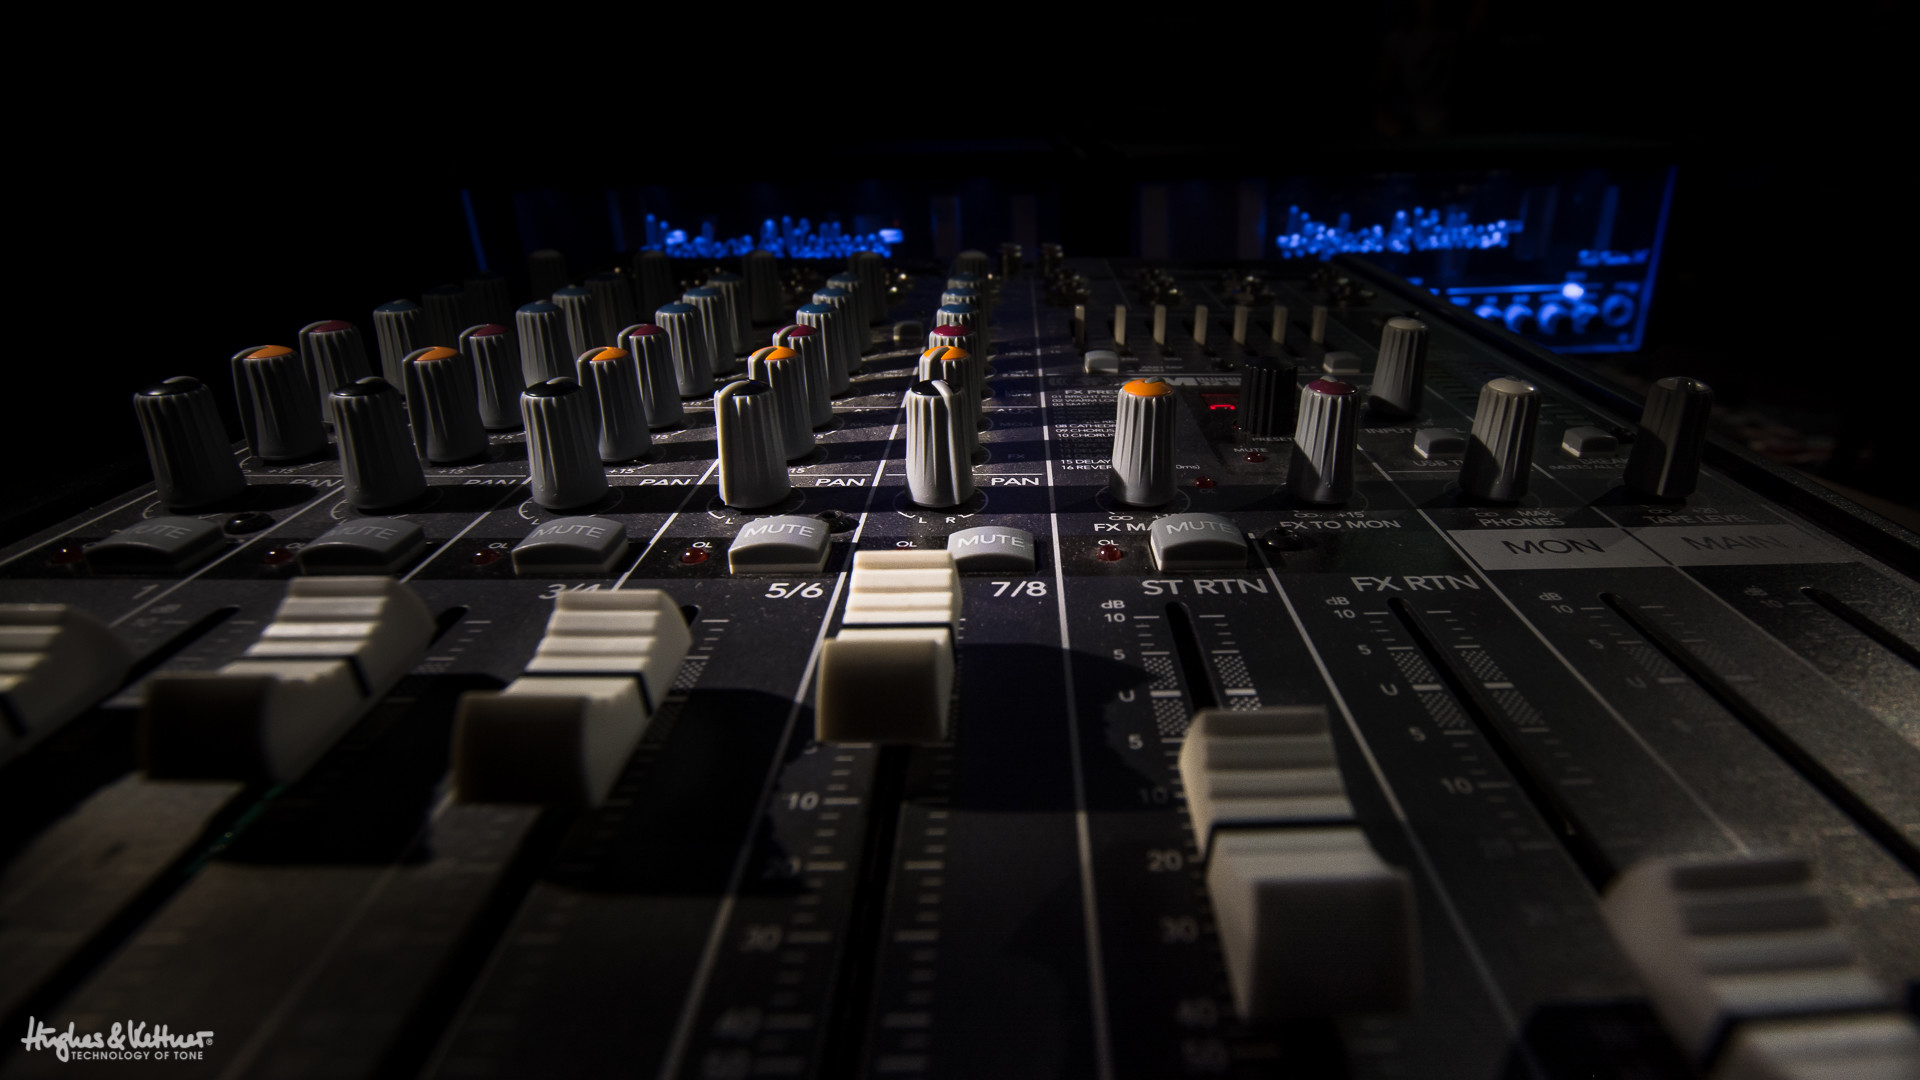 1920x1080 We've come a long way since the swinging 60s. A mixing console like